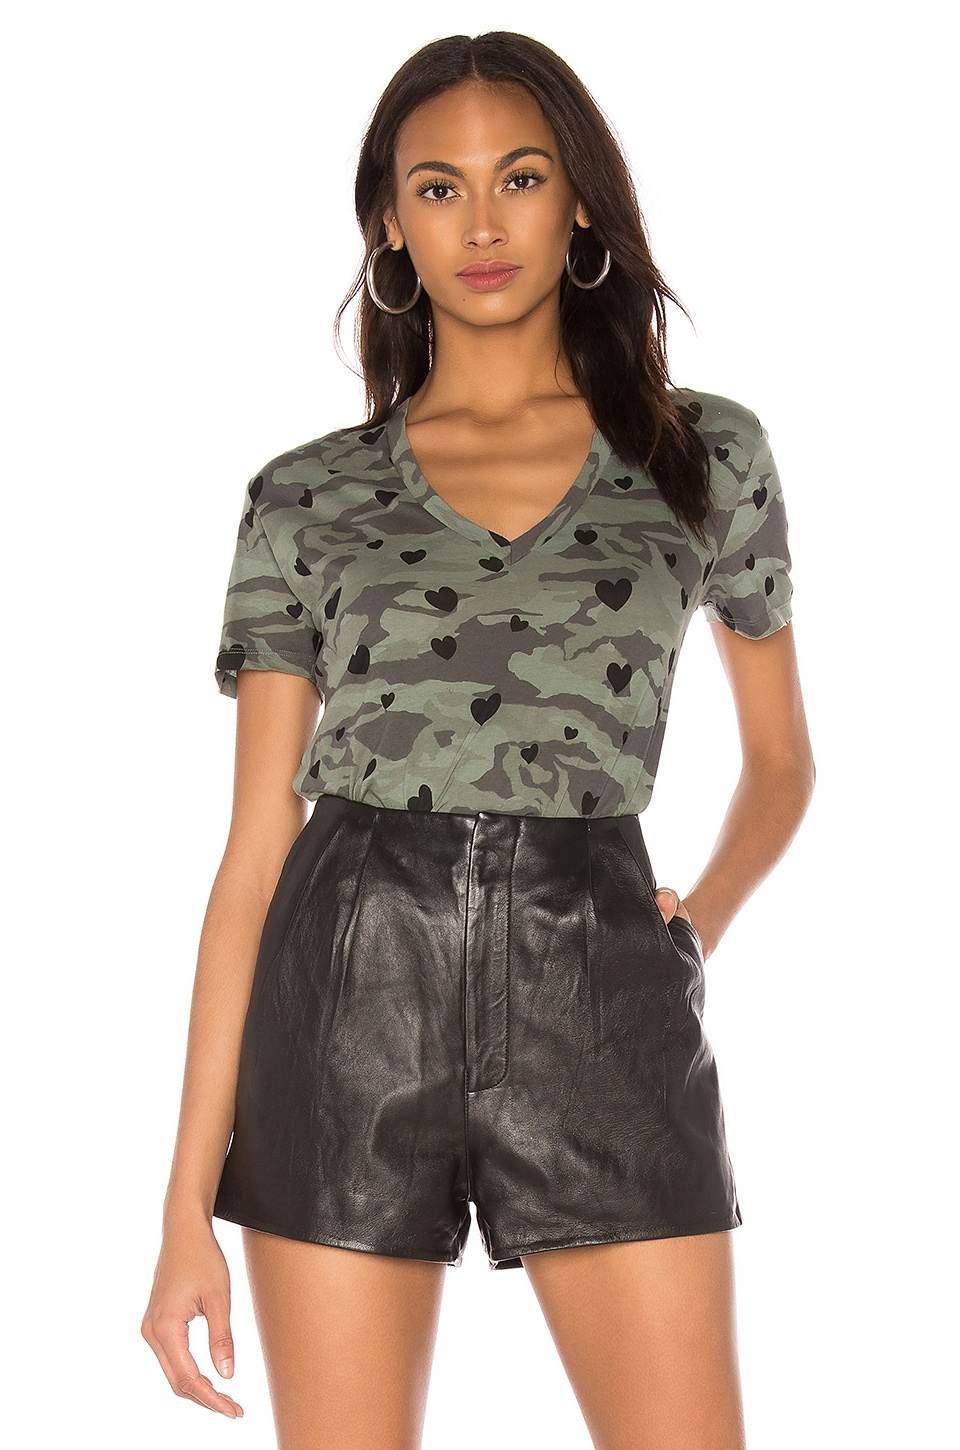 MONROW Camo Relaxed V Neck with Hearts Tee in Cactus